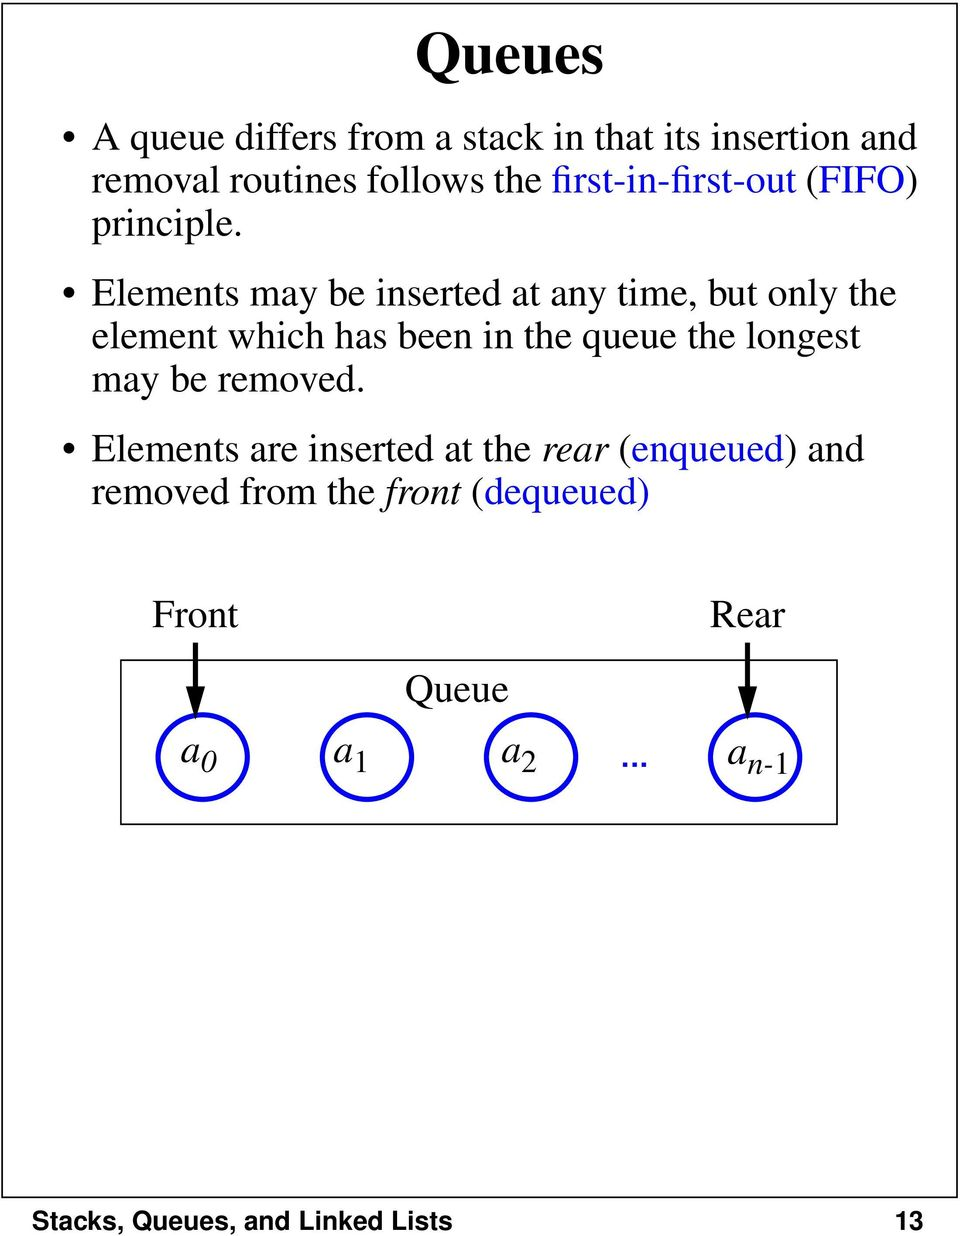 Elements may be inserted at any time, but only the element which has been in the queue the